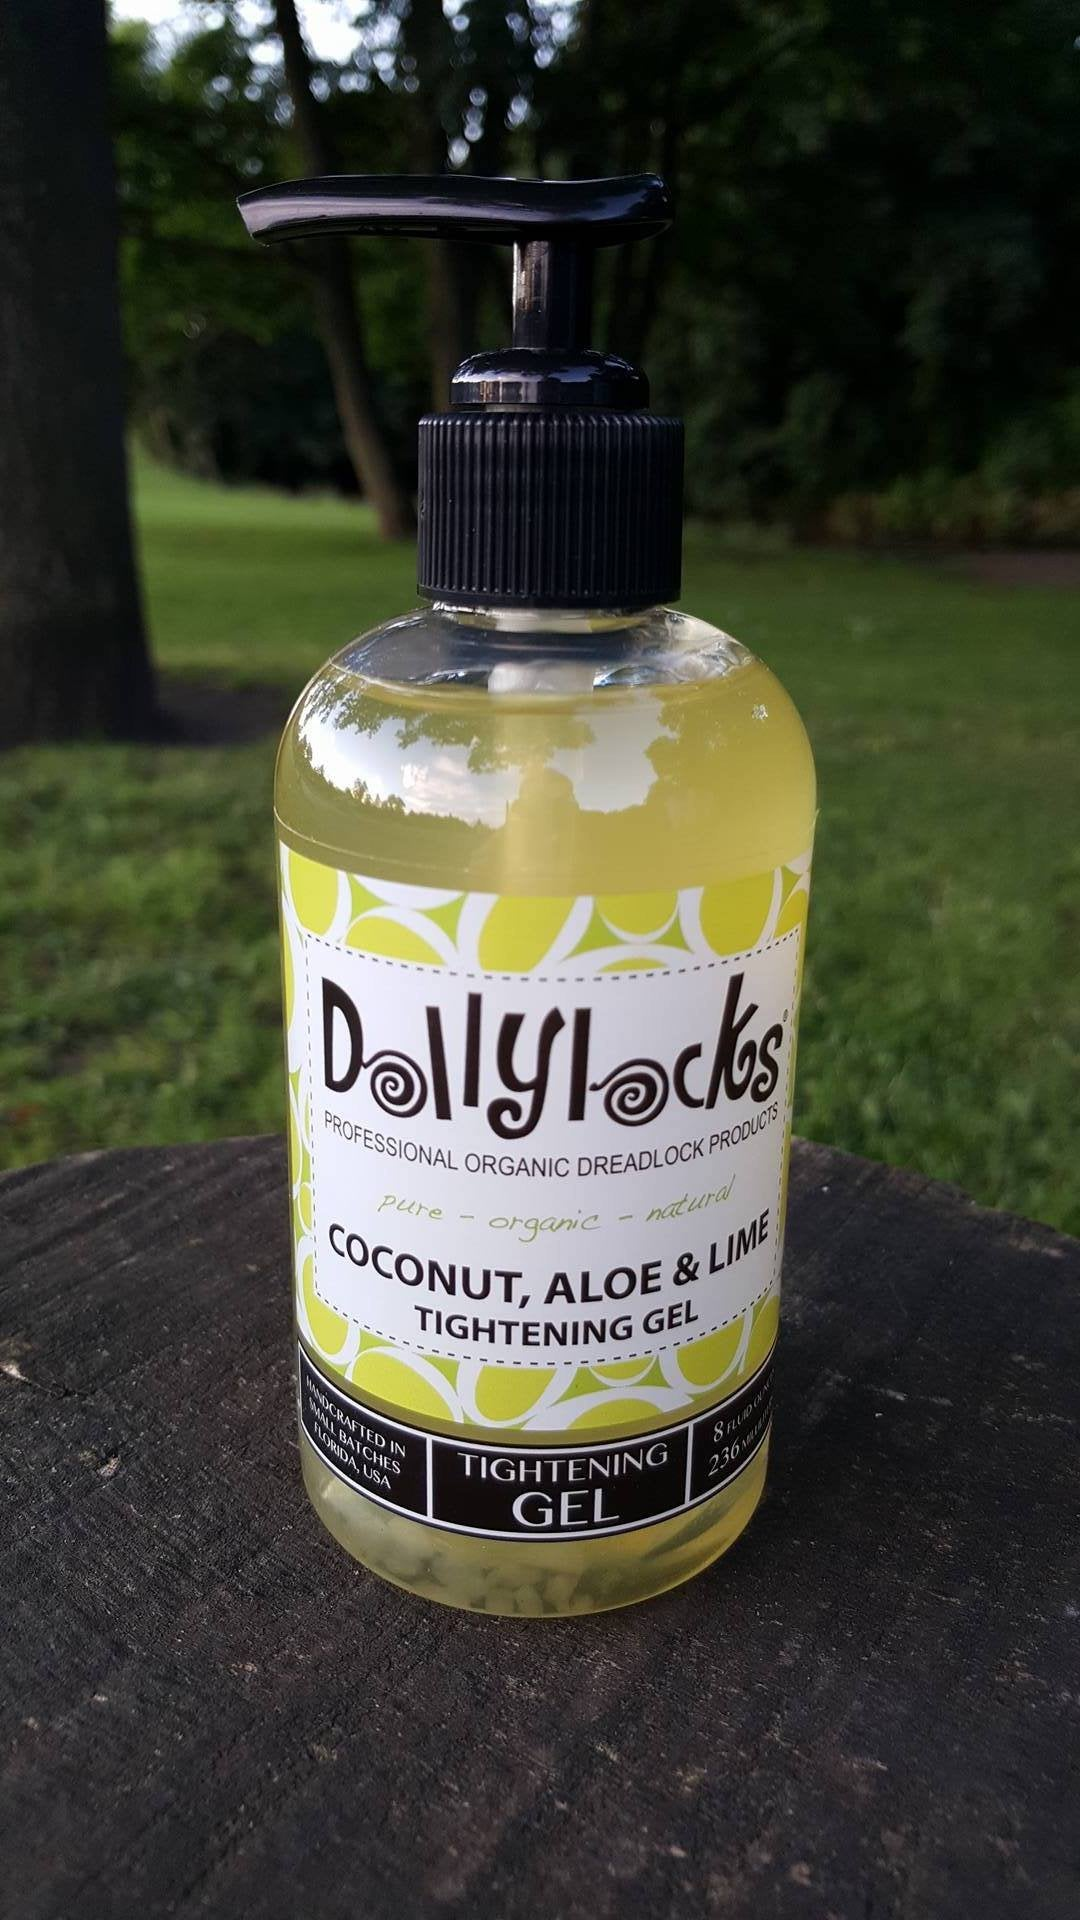 Dollylocks Dreadlocks Gel 8oz